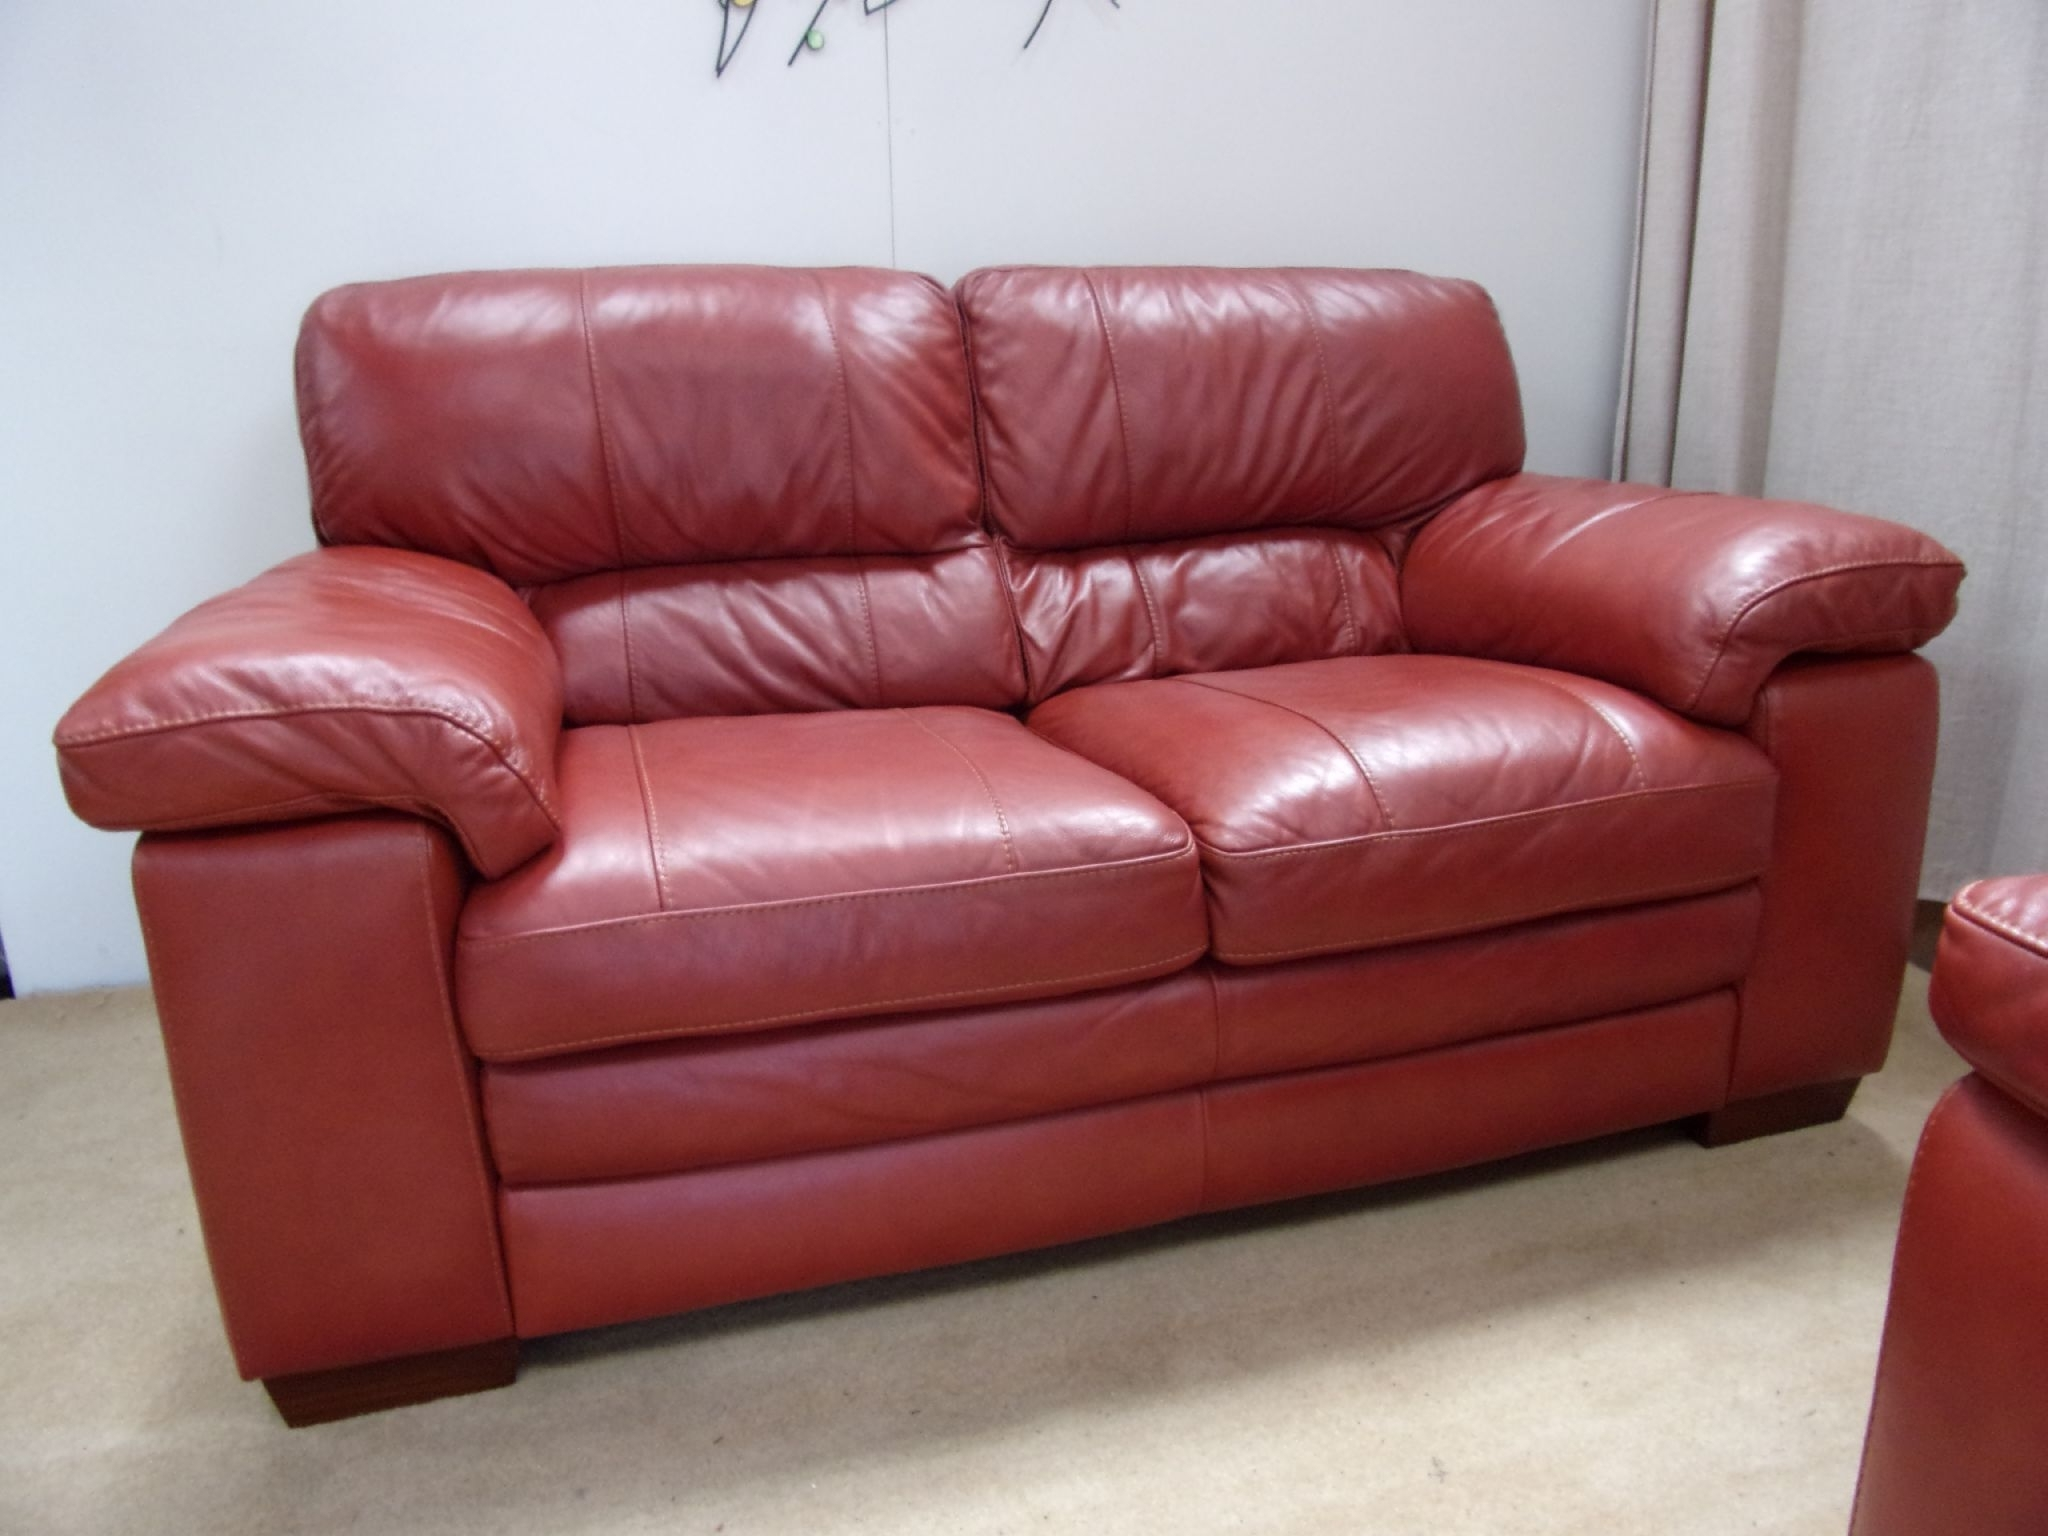 Red Leather Couches And Loveseats Throughout 2017 Sears Leather Sofa Sofas Red Gumtree Manchester Ireland Couch And (View 13 of 15)